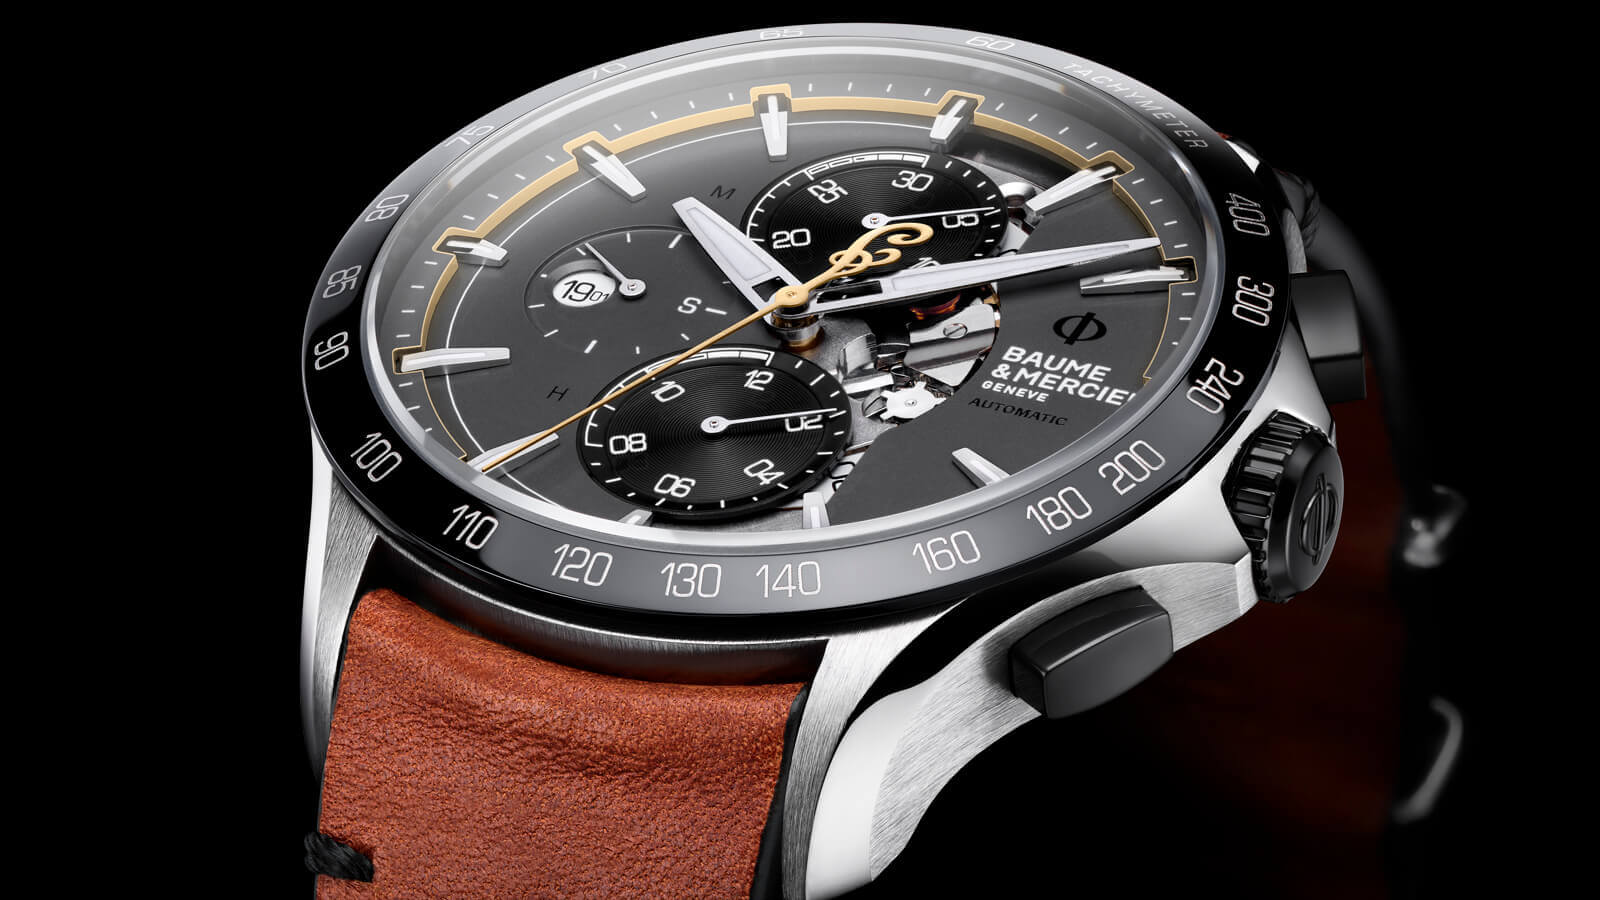 Baume & Mercier Clifton Club Indian - chronograph with three subdials